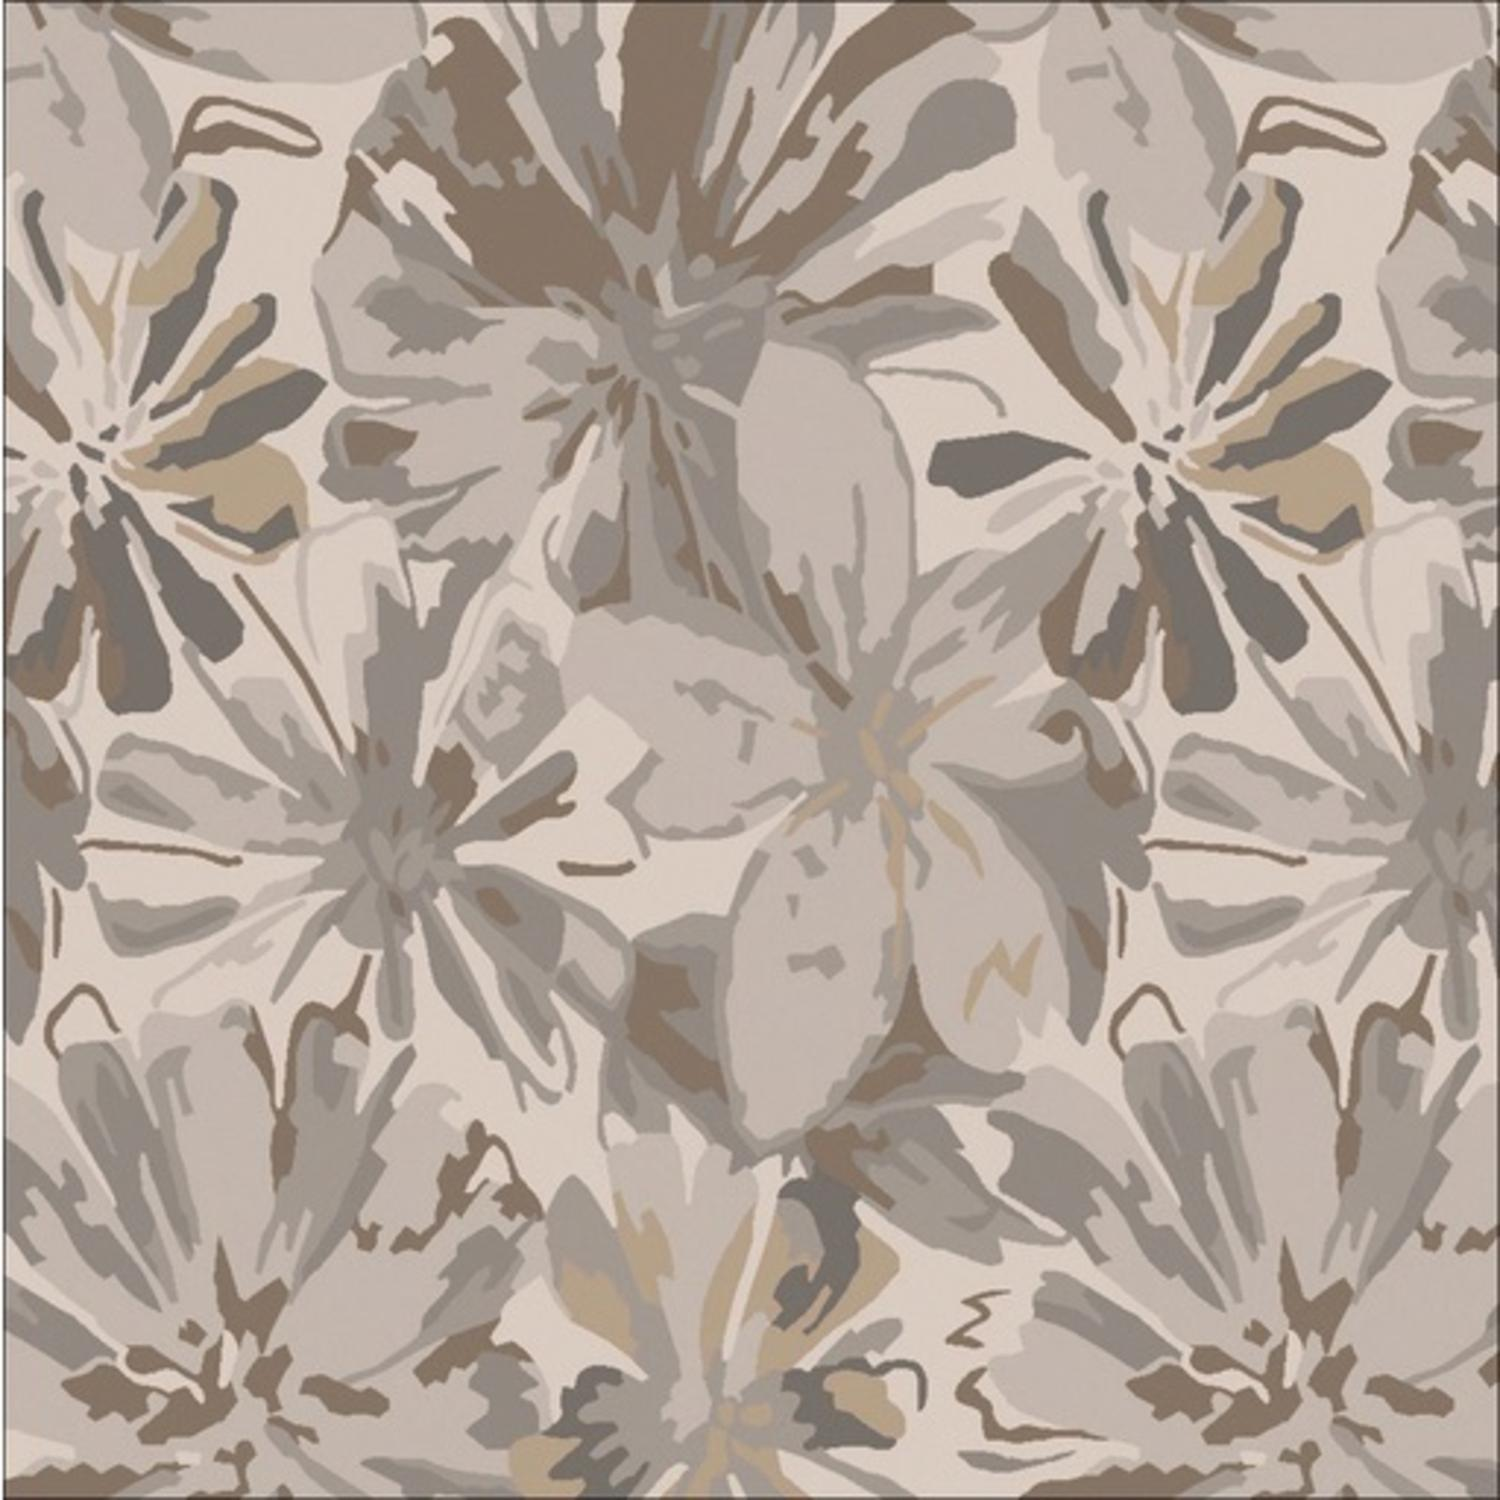 9.75' x 9.75' Daisy Dream Gray, Brown and Beige Flower Square Hand Tufted Wool Area Throw Rug